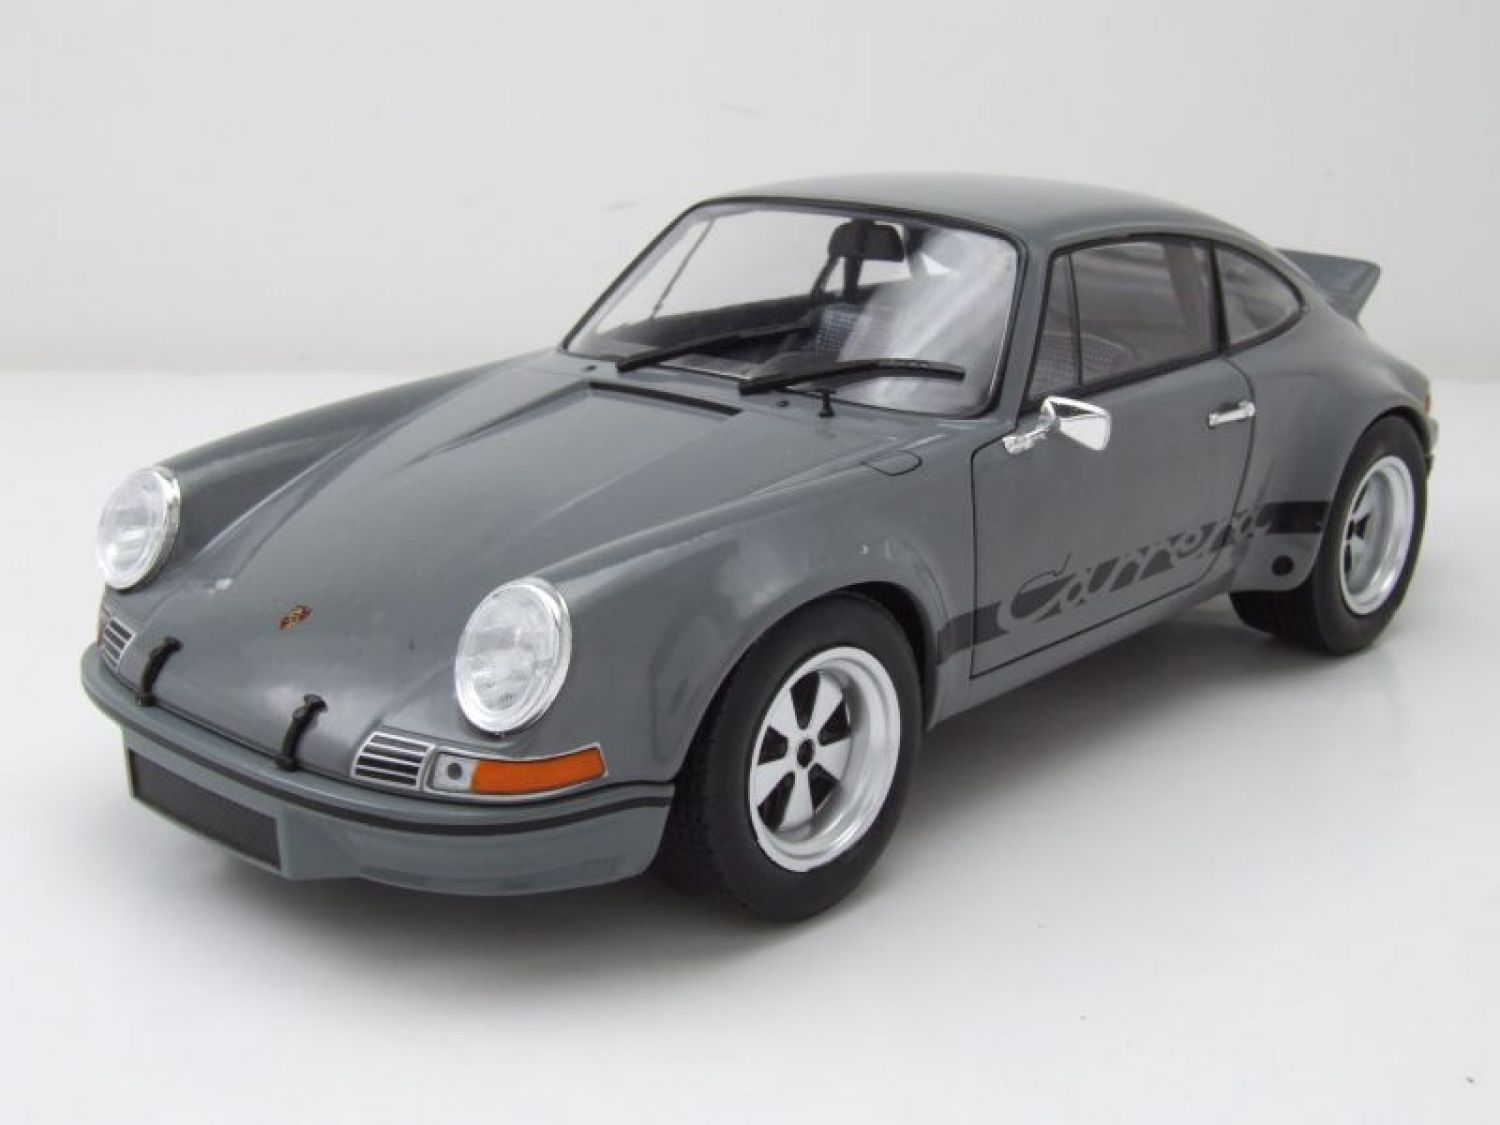 porsche 911 rsr 2 8 1974 grau modellauto 1 18 solido ebay. Black Bedroom Furniture Sets. Home Design Ideas